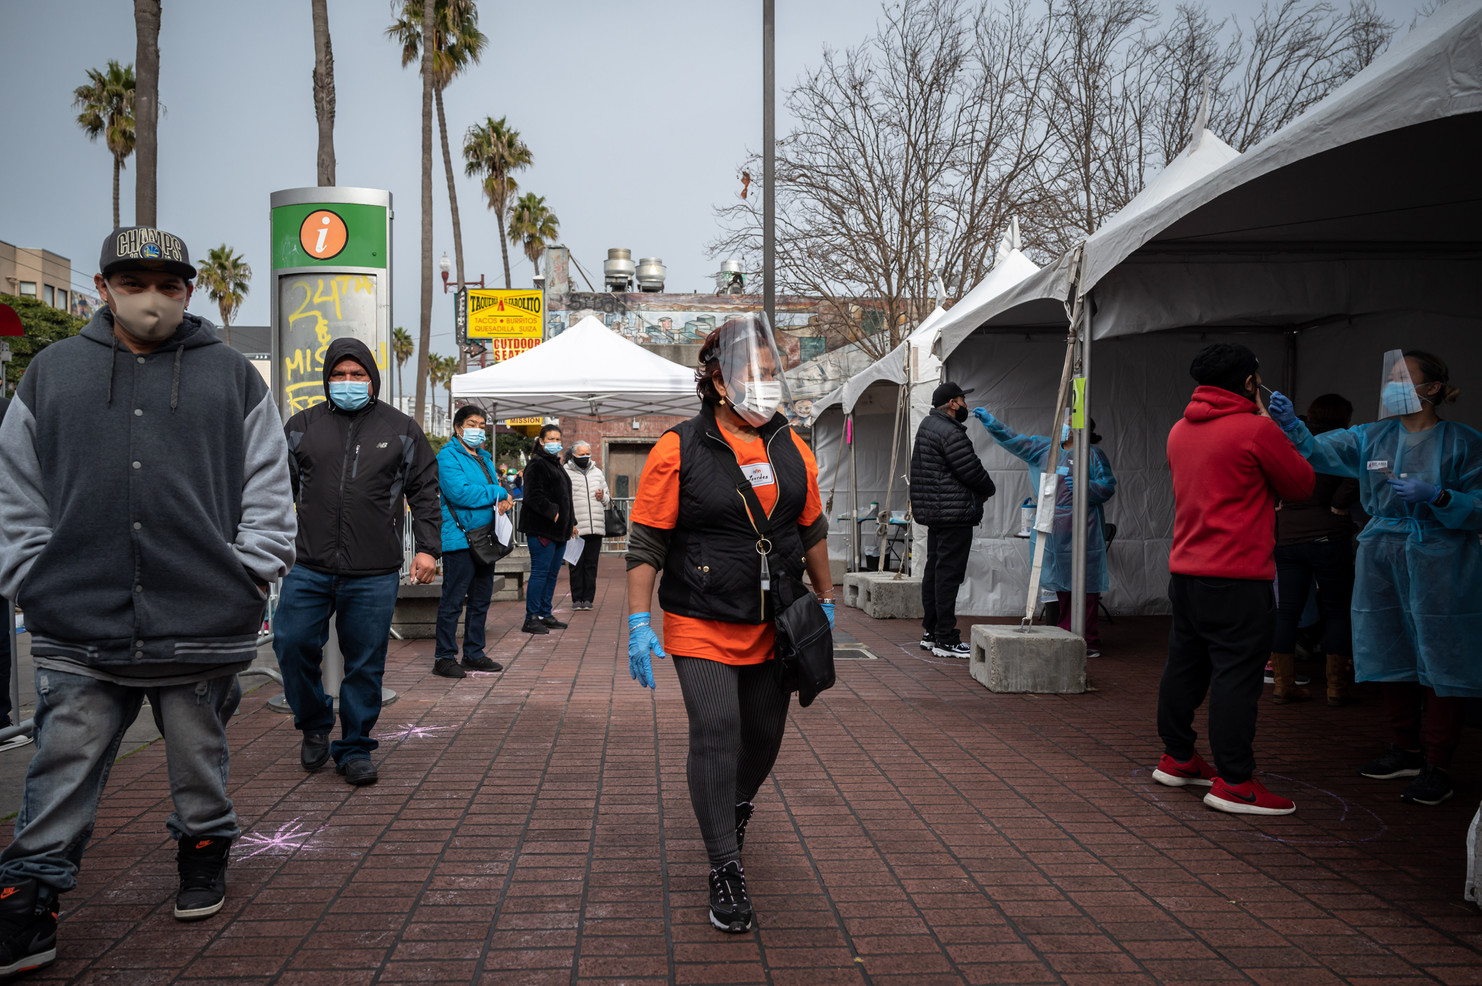 Unidos En Salud volunteer coordinator Lourdes Lozano guides Latino community members lined up waiting to be tested at a free pop up COVID-19 test site in front of 24th Mission Bart Station.